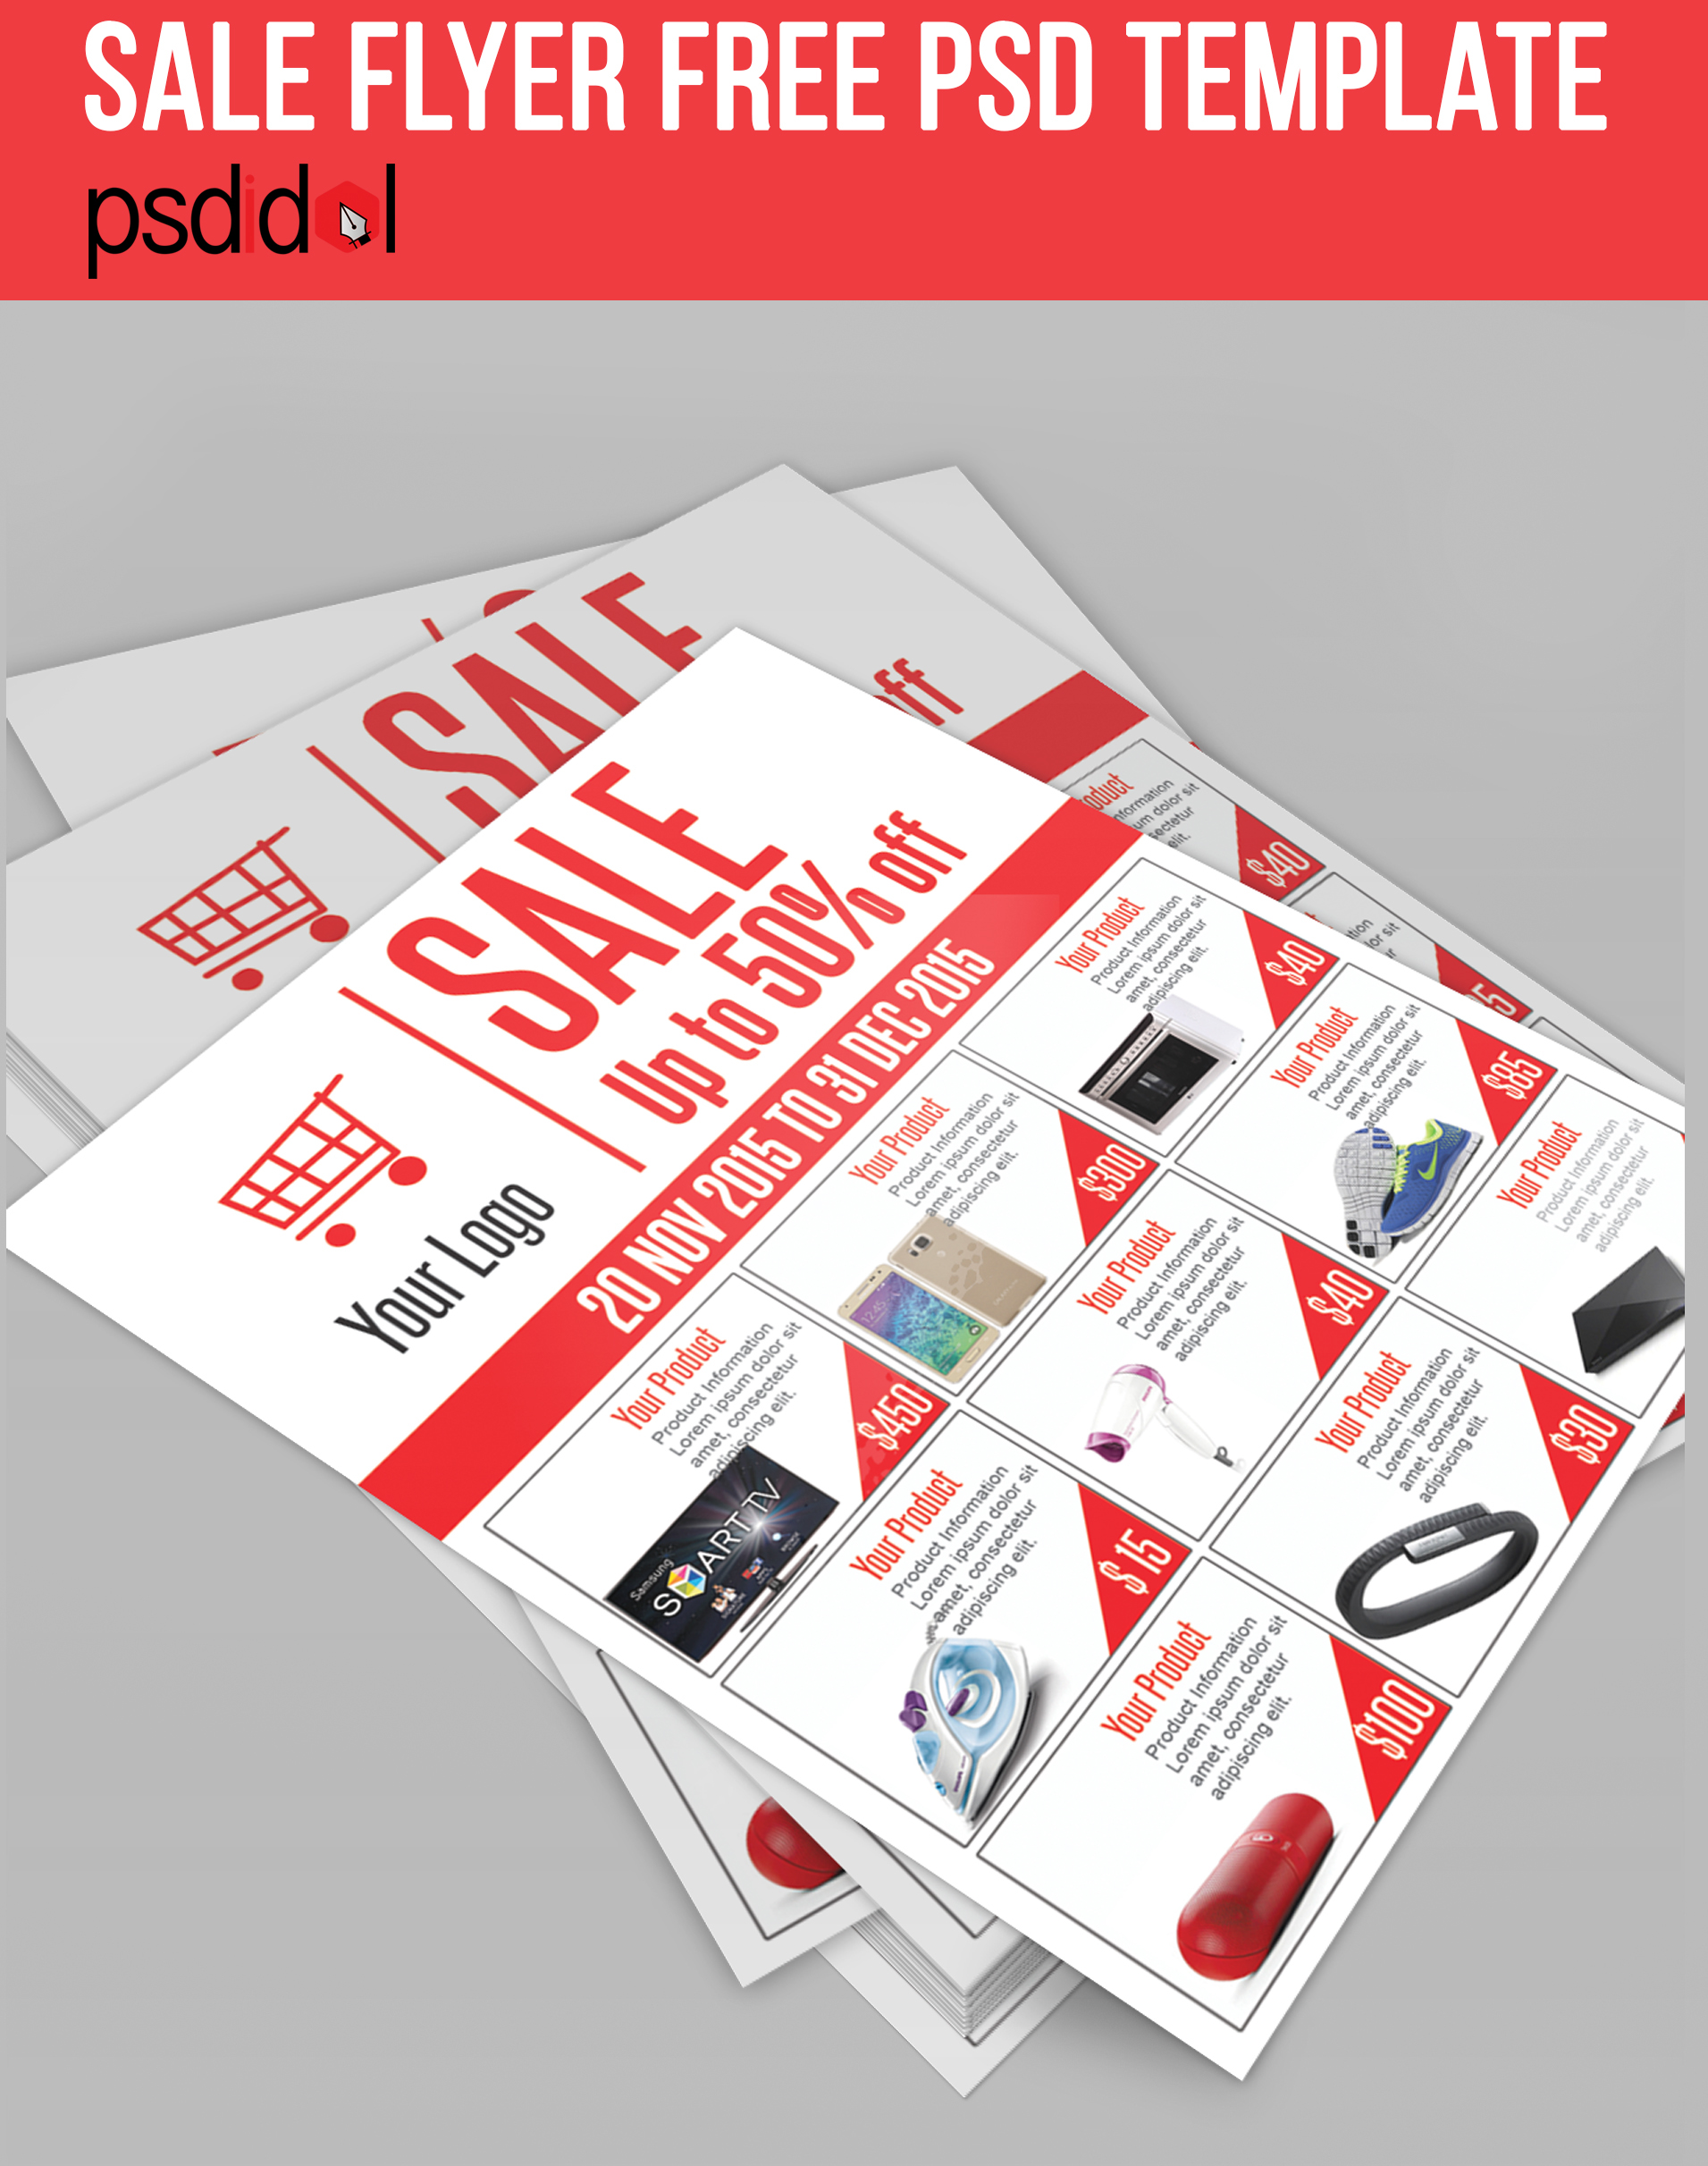 Sale Flyer Free PSD Template Download On Behance - Car for sale flyer template free